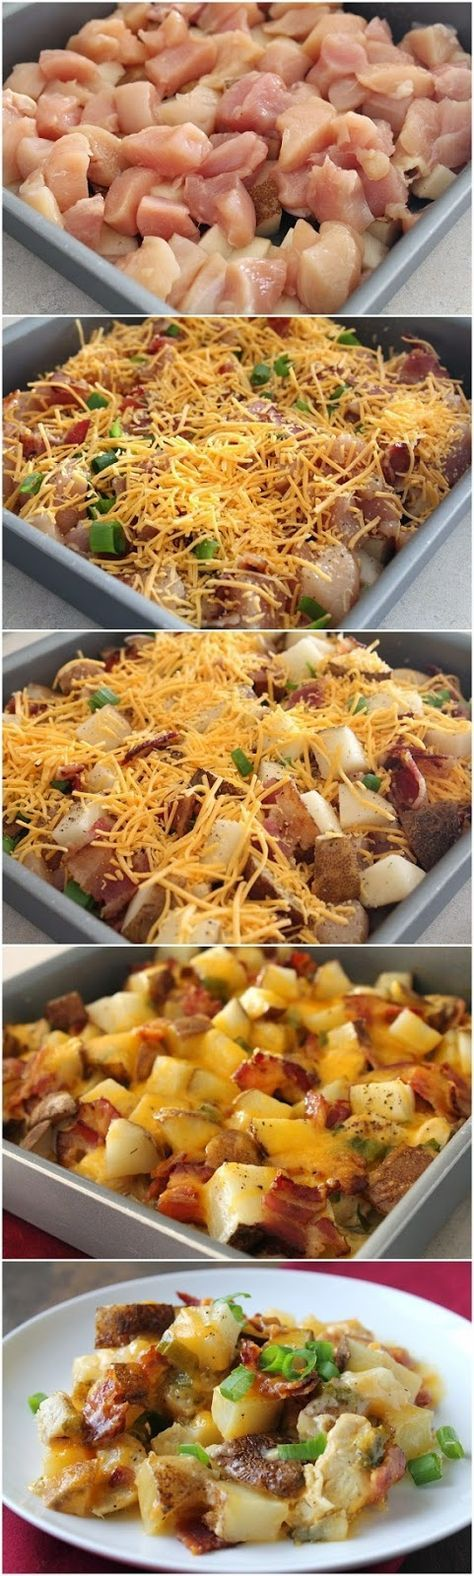 Loaded Baked Potato And Chicken Casserole. Changes I made: slice potatoes and chicken into thin and small chunks, and mix both into sauce and bake at 500 degrees, covered.